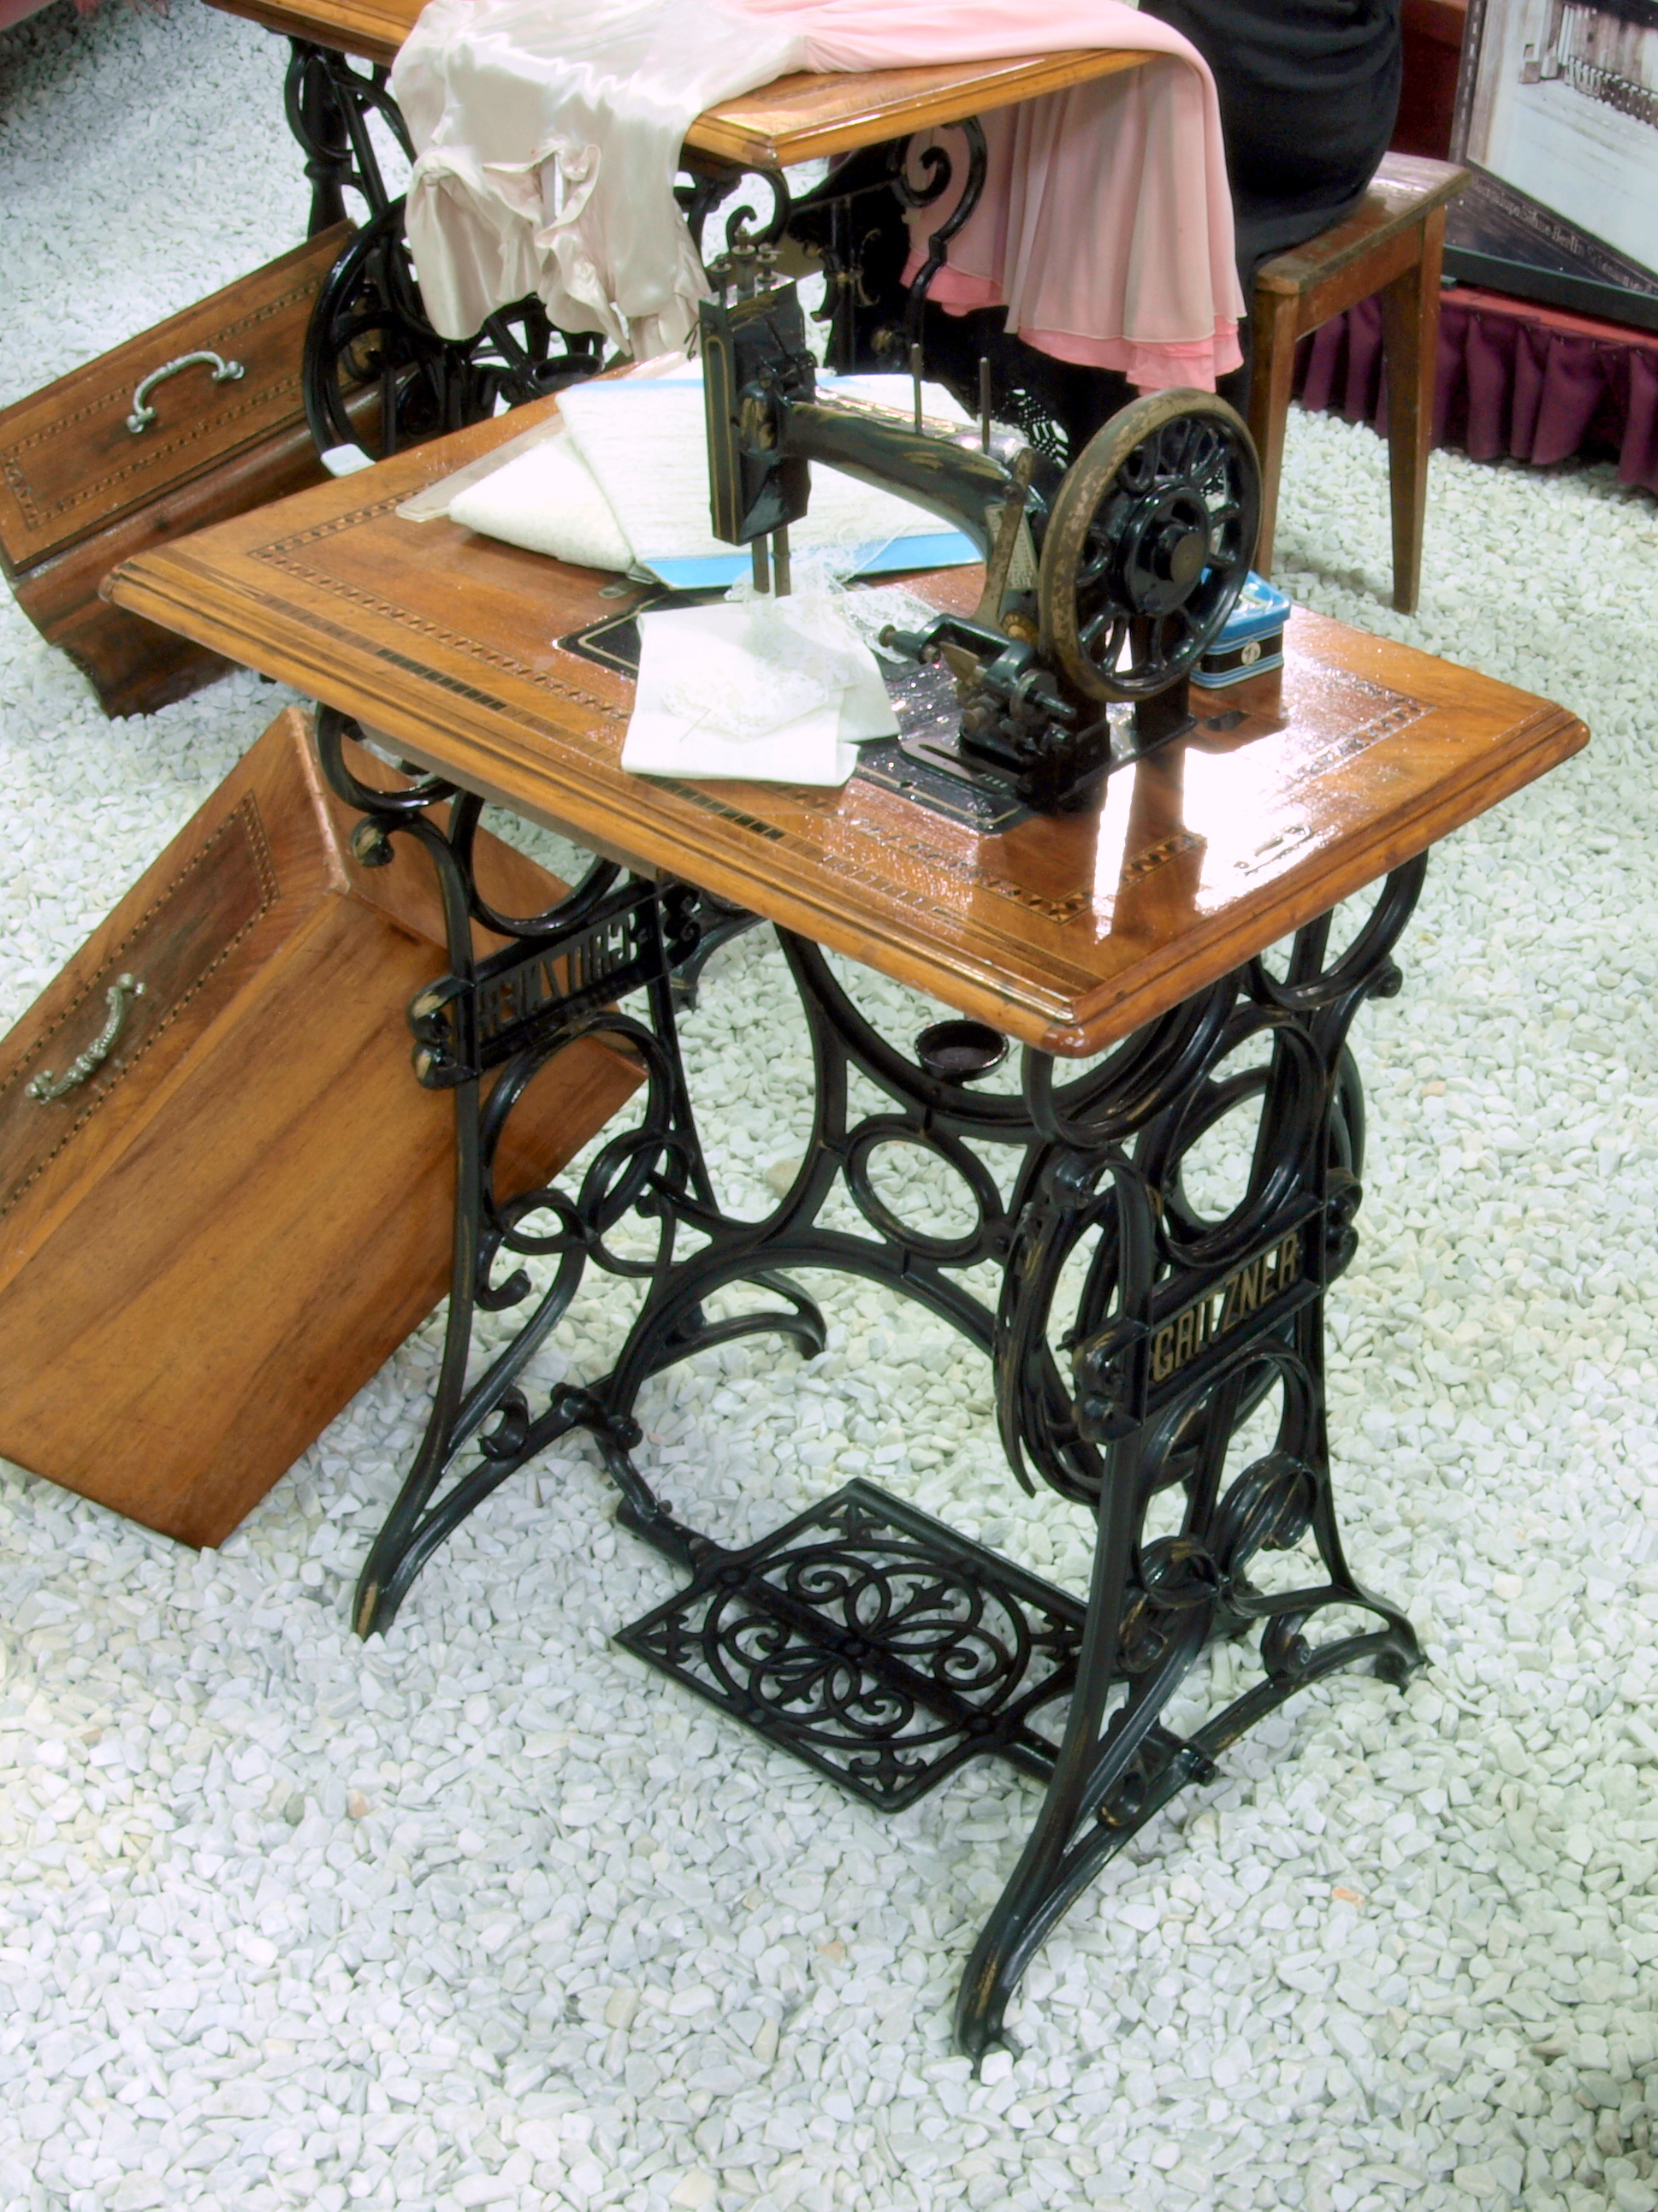 gritzner sewing machine